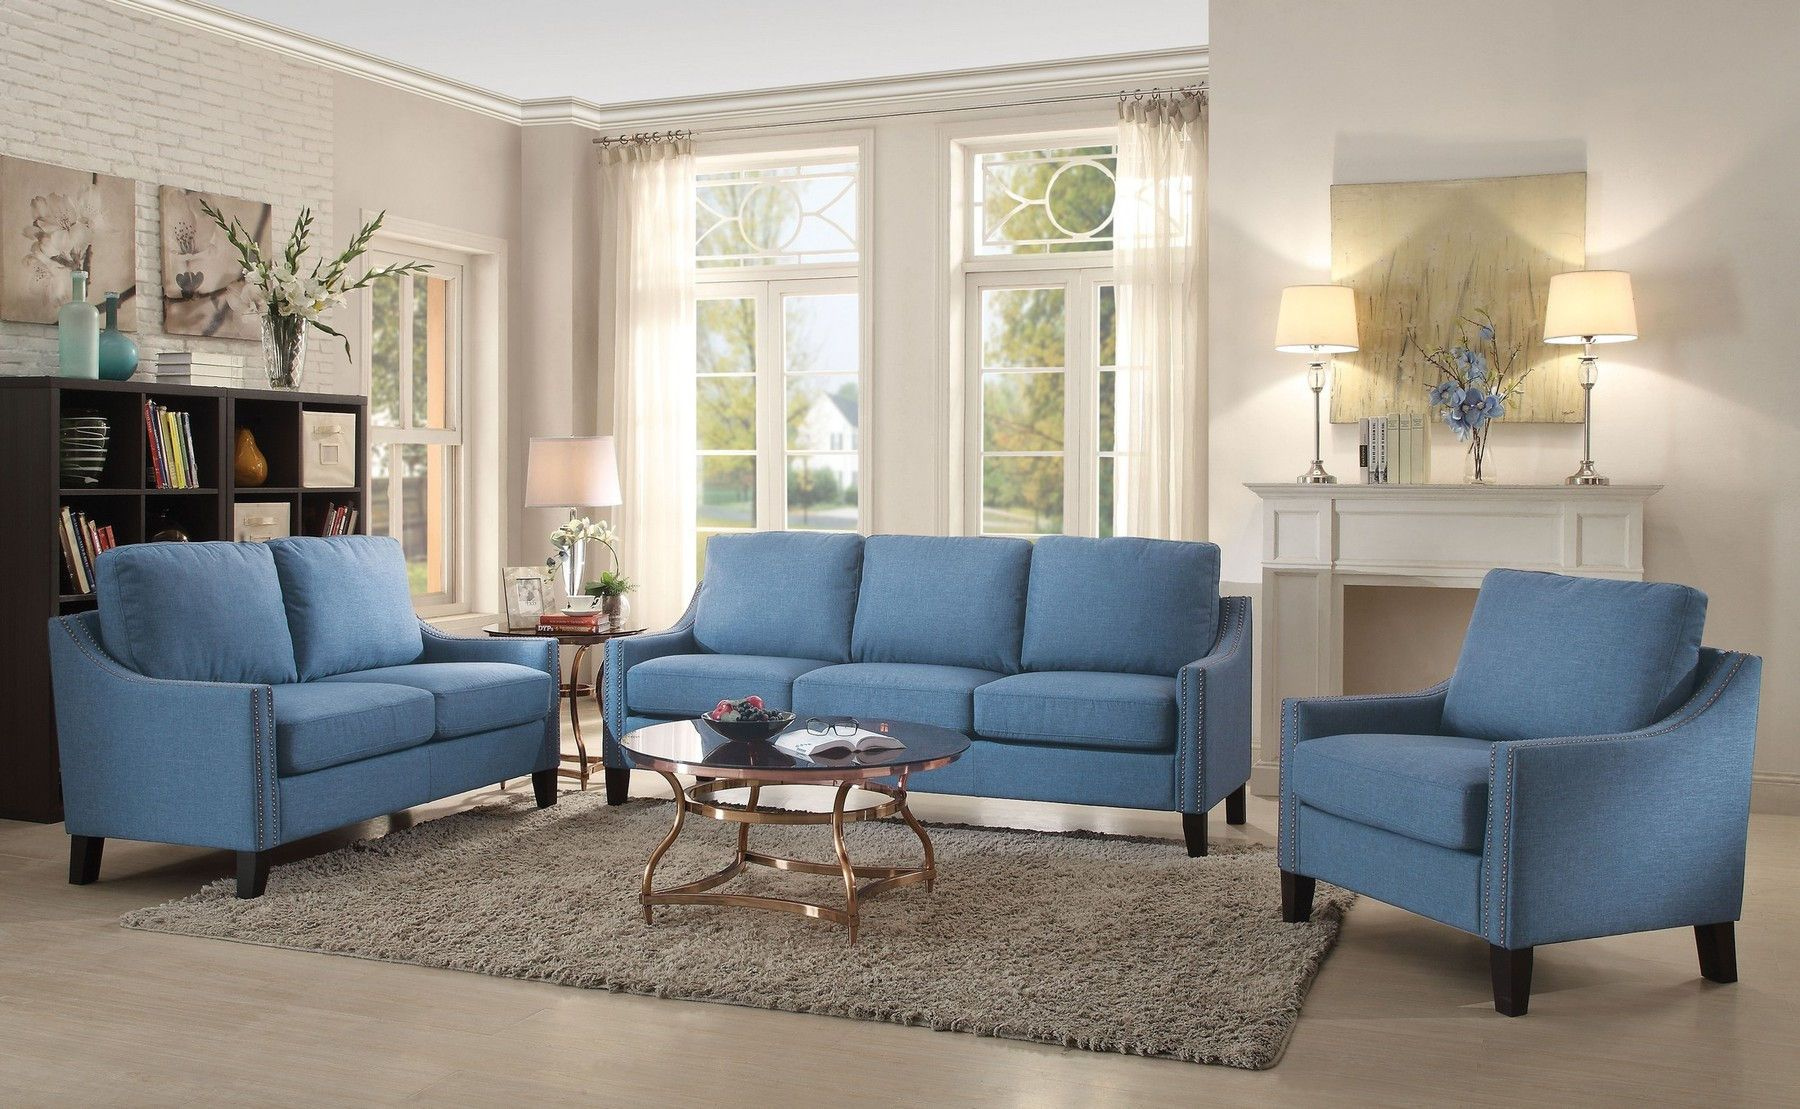 Zapata Blue Sofa In 2020 Sofa Frame Furniture Living Room Sets